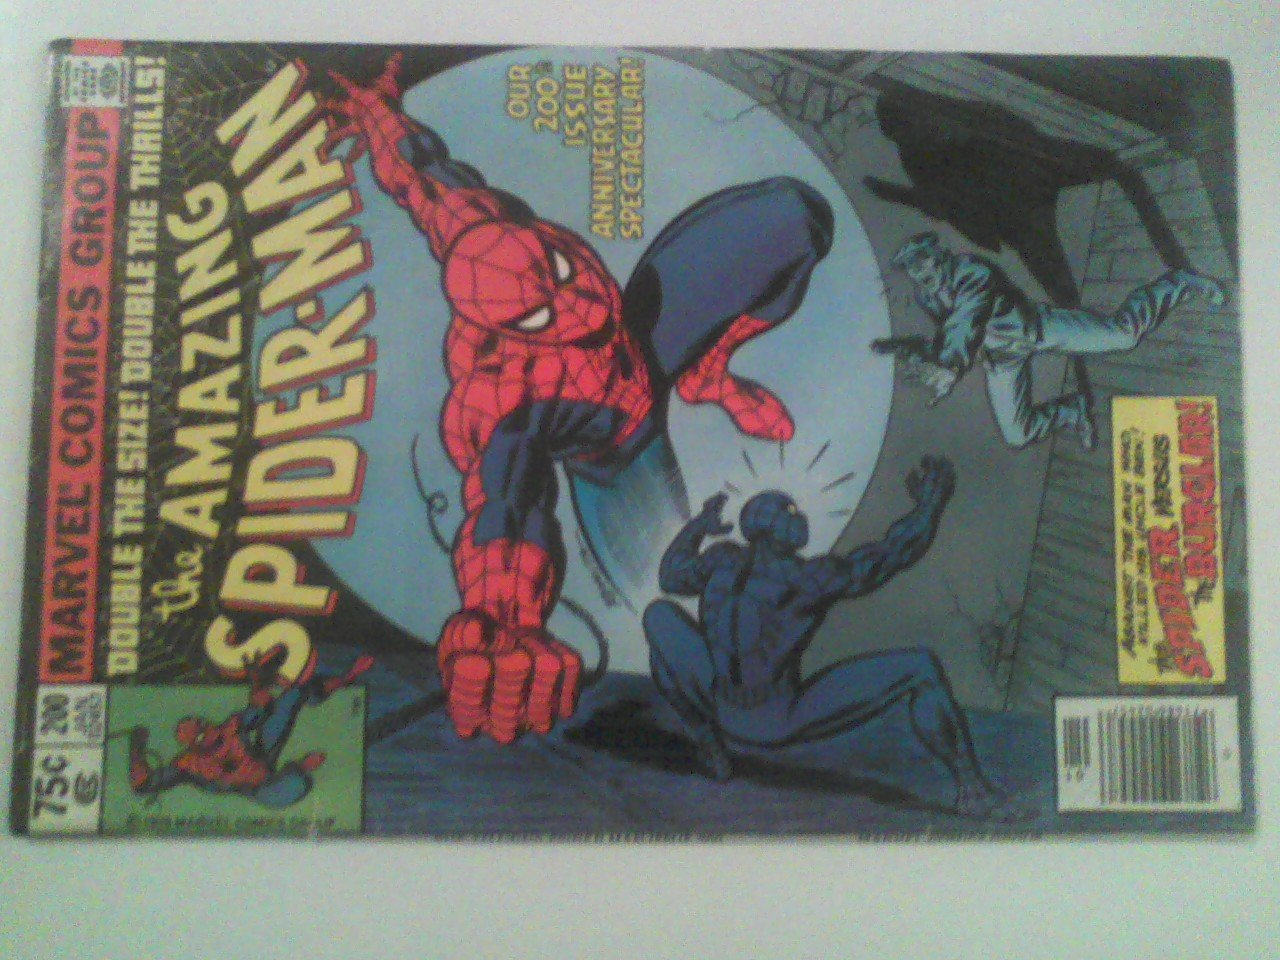 Amazing Spiderman #200, -1 Spectacular Spiderman # -1,#1 #189, Peter Parker -1